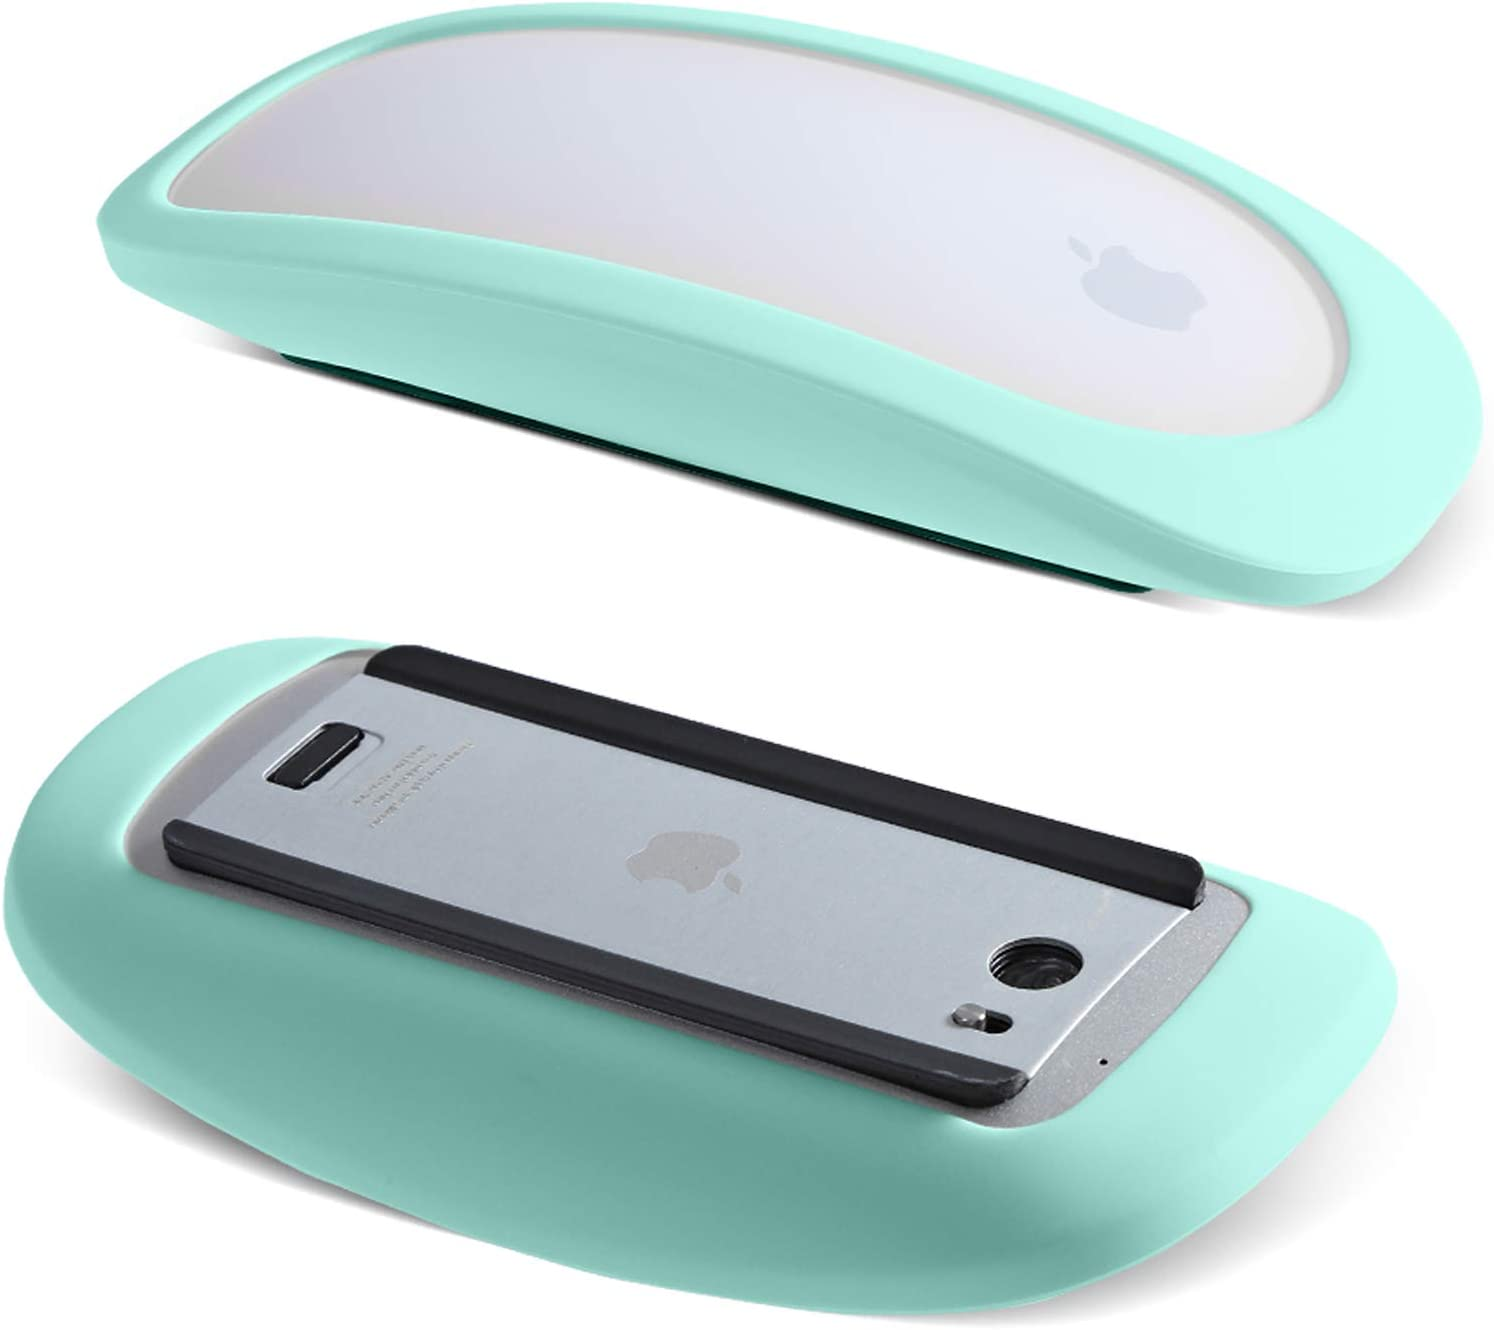 Protective Sleeve for Apple Magic Mouse 1 and 2, Silicone Case Cover Compatible with Apple Magic Mouse Lightweight Anti-Slip (Turquoise)